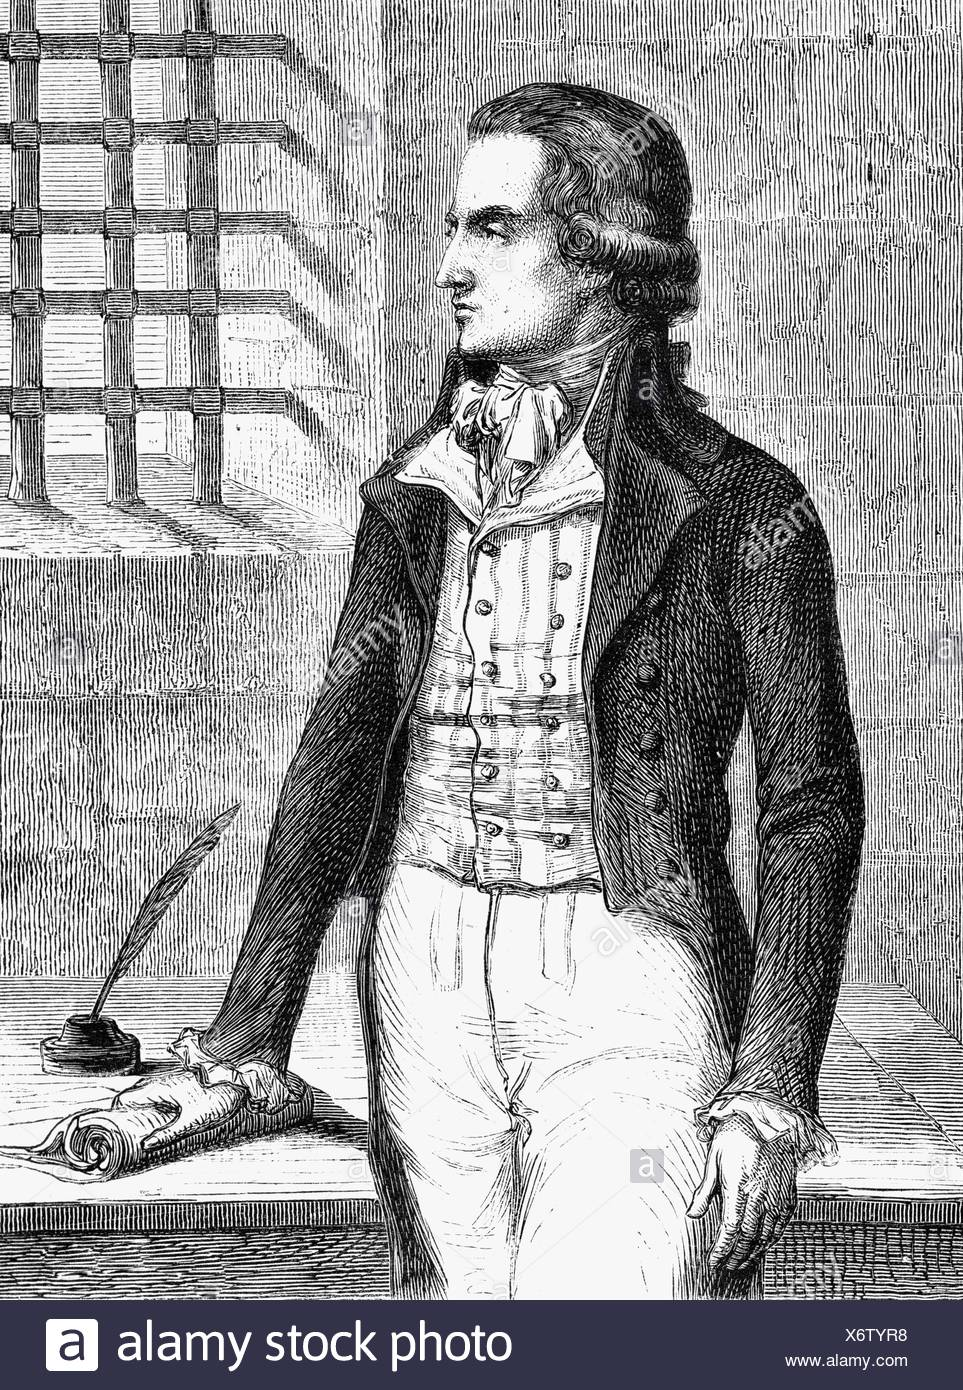 Chenier, Andre, 30.10.1762 - 25.7.1794, French author / writer, in prison 1793, wood engraving after Jean Clays, 19th century, , Additional-Rights-Clearances-NA - Stock Image